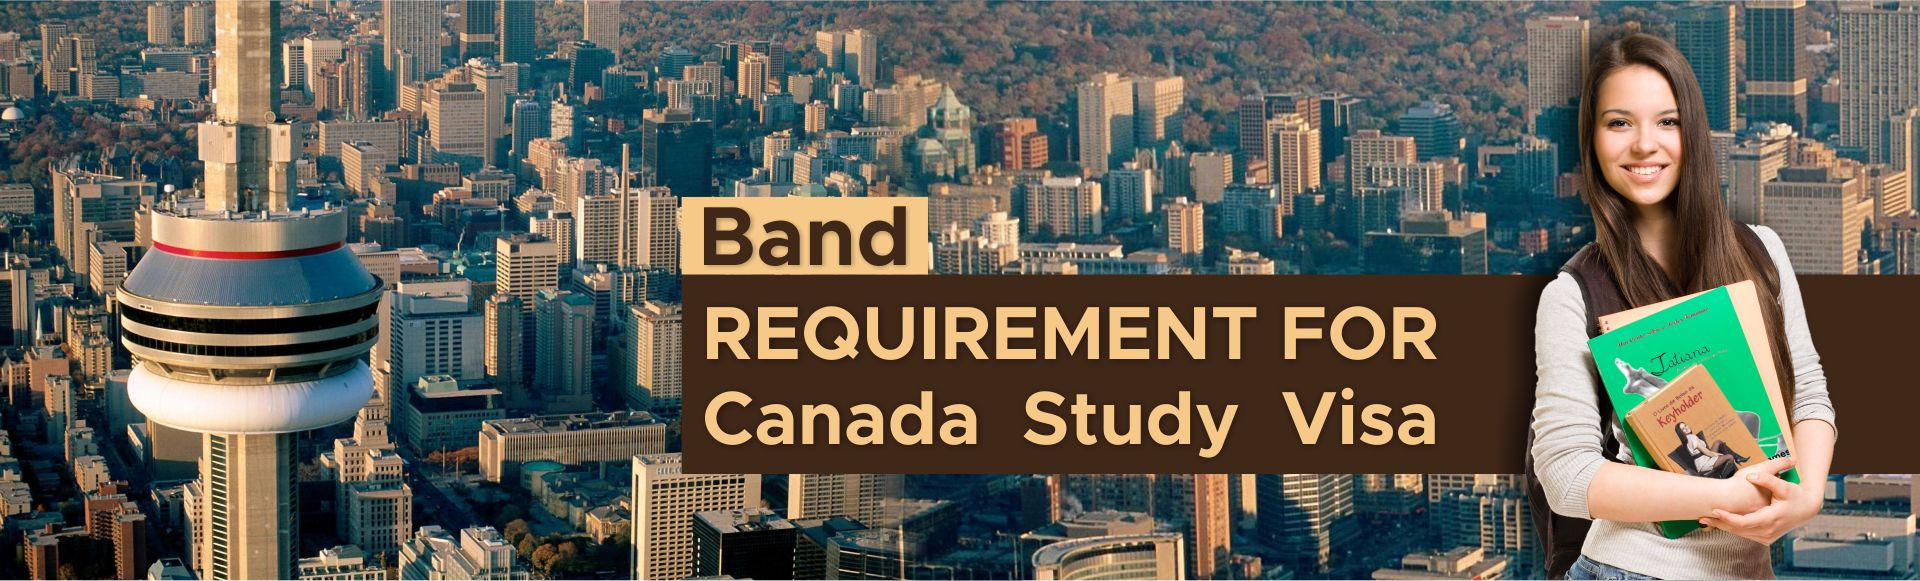 Band Requirement for Canada Study Visa